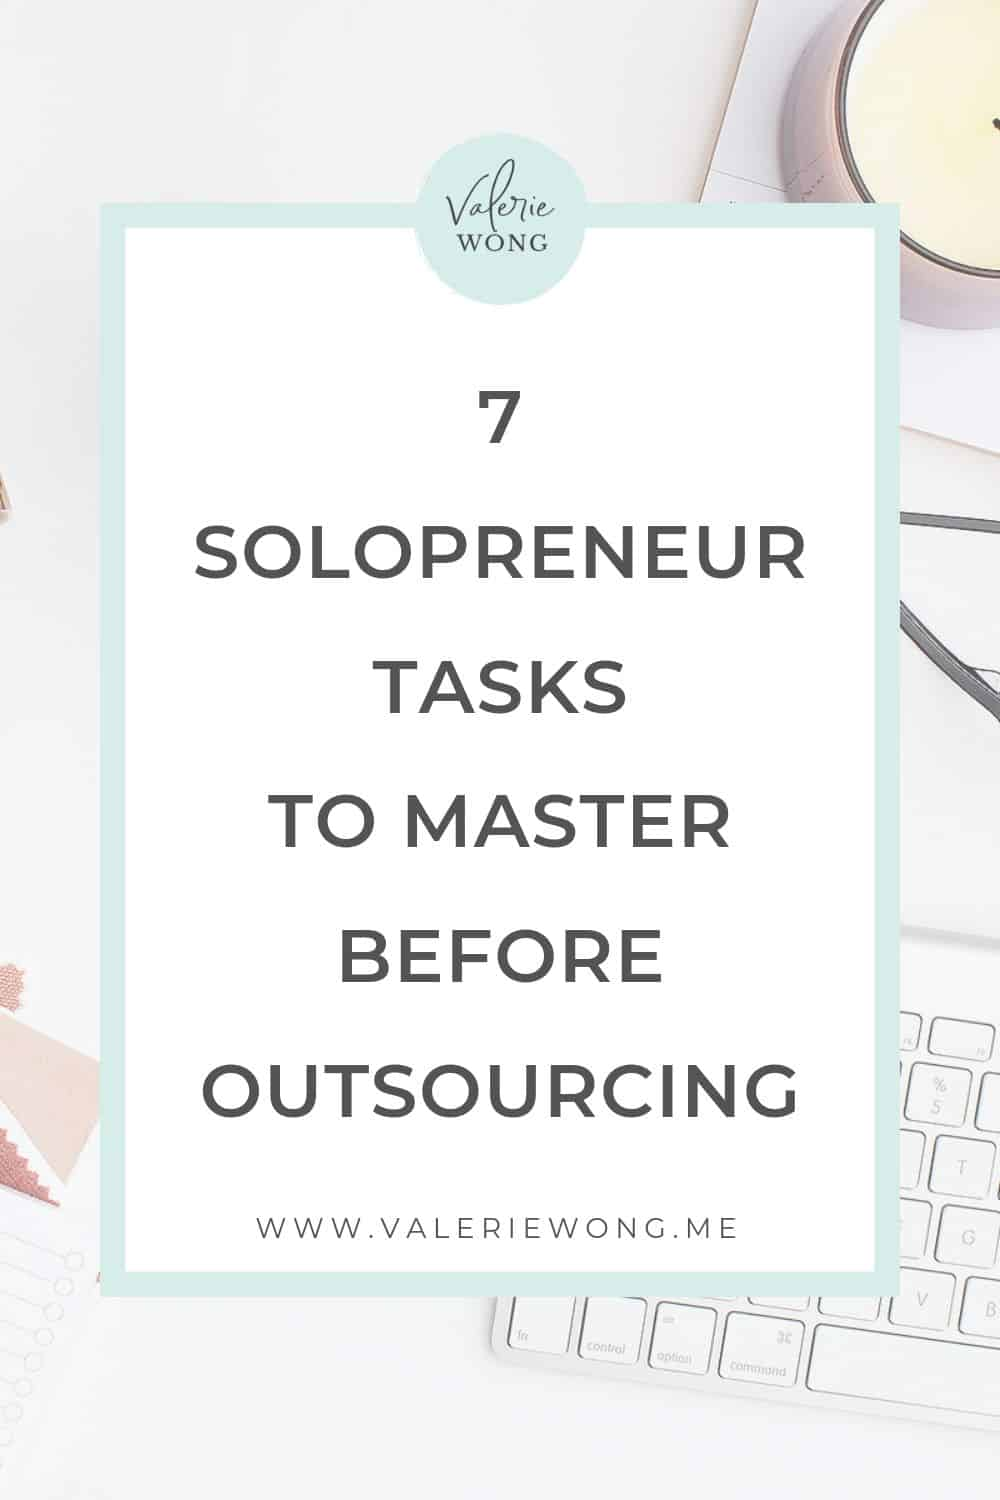 7 essential solopreneur tasks you need to master before outsourcing | Outsourcing is an amazing time saver for solopreneurs, but outsourcing certain tasks too soon can be a mistake. There are some tasks you should be proficient in before handing them off to a virtual assistant. In this post I'll share 7 things you need to learn to do yourself as a digital entrepreneur before you outsource, and why it's important. | Valerie Wong Wellness #valeriewong #outsourcing #outsourcingtips #solopreneurtips via @valeriewonglifecoach